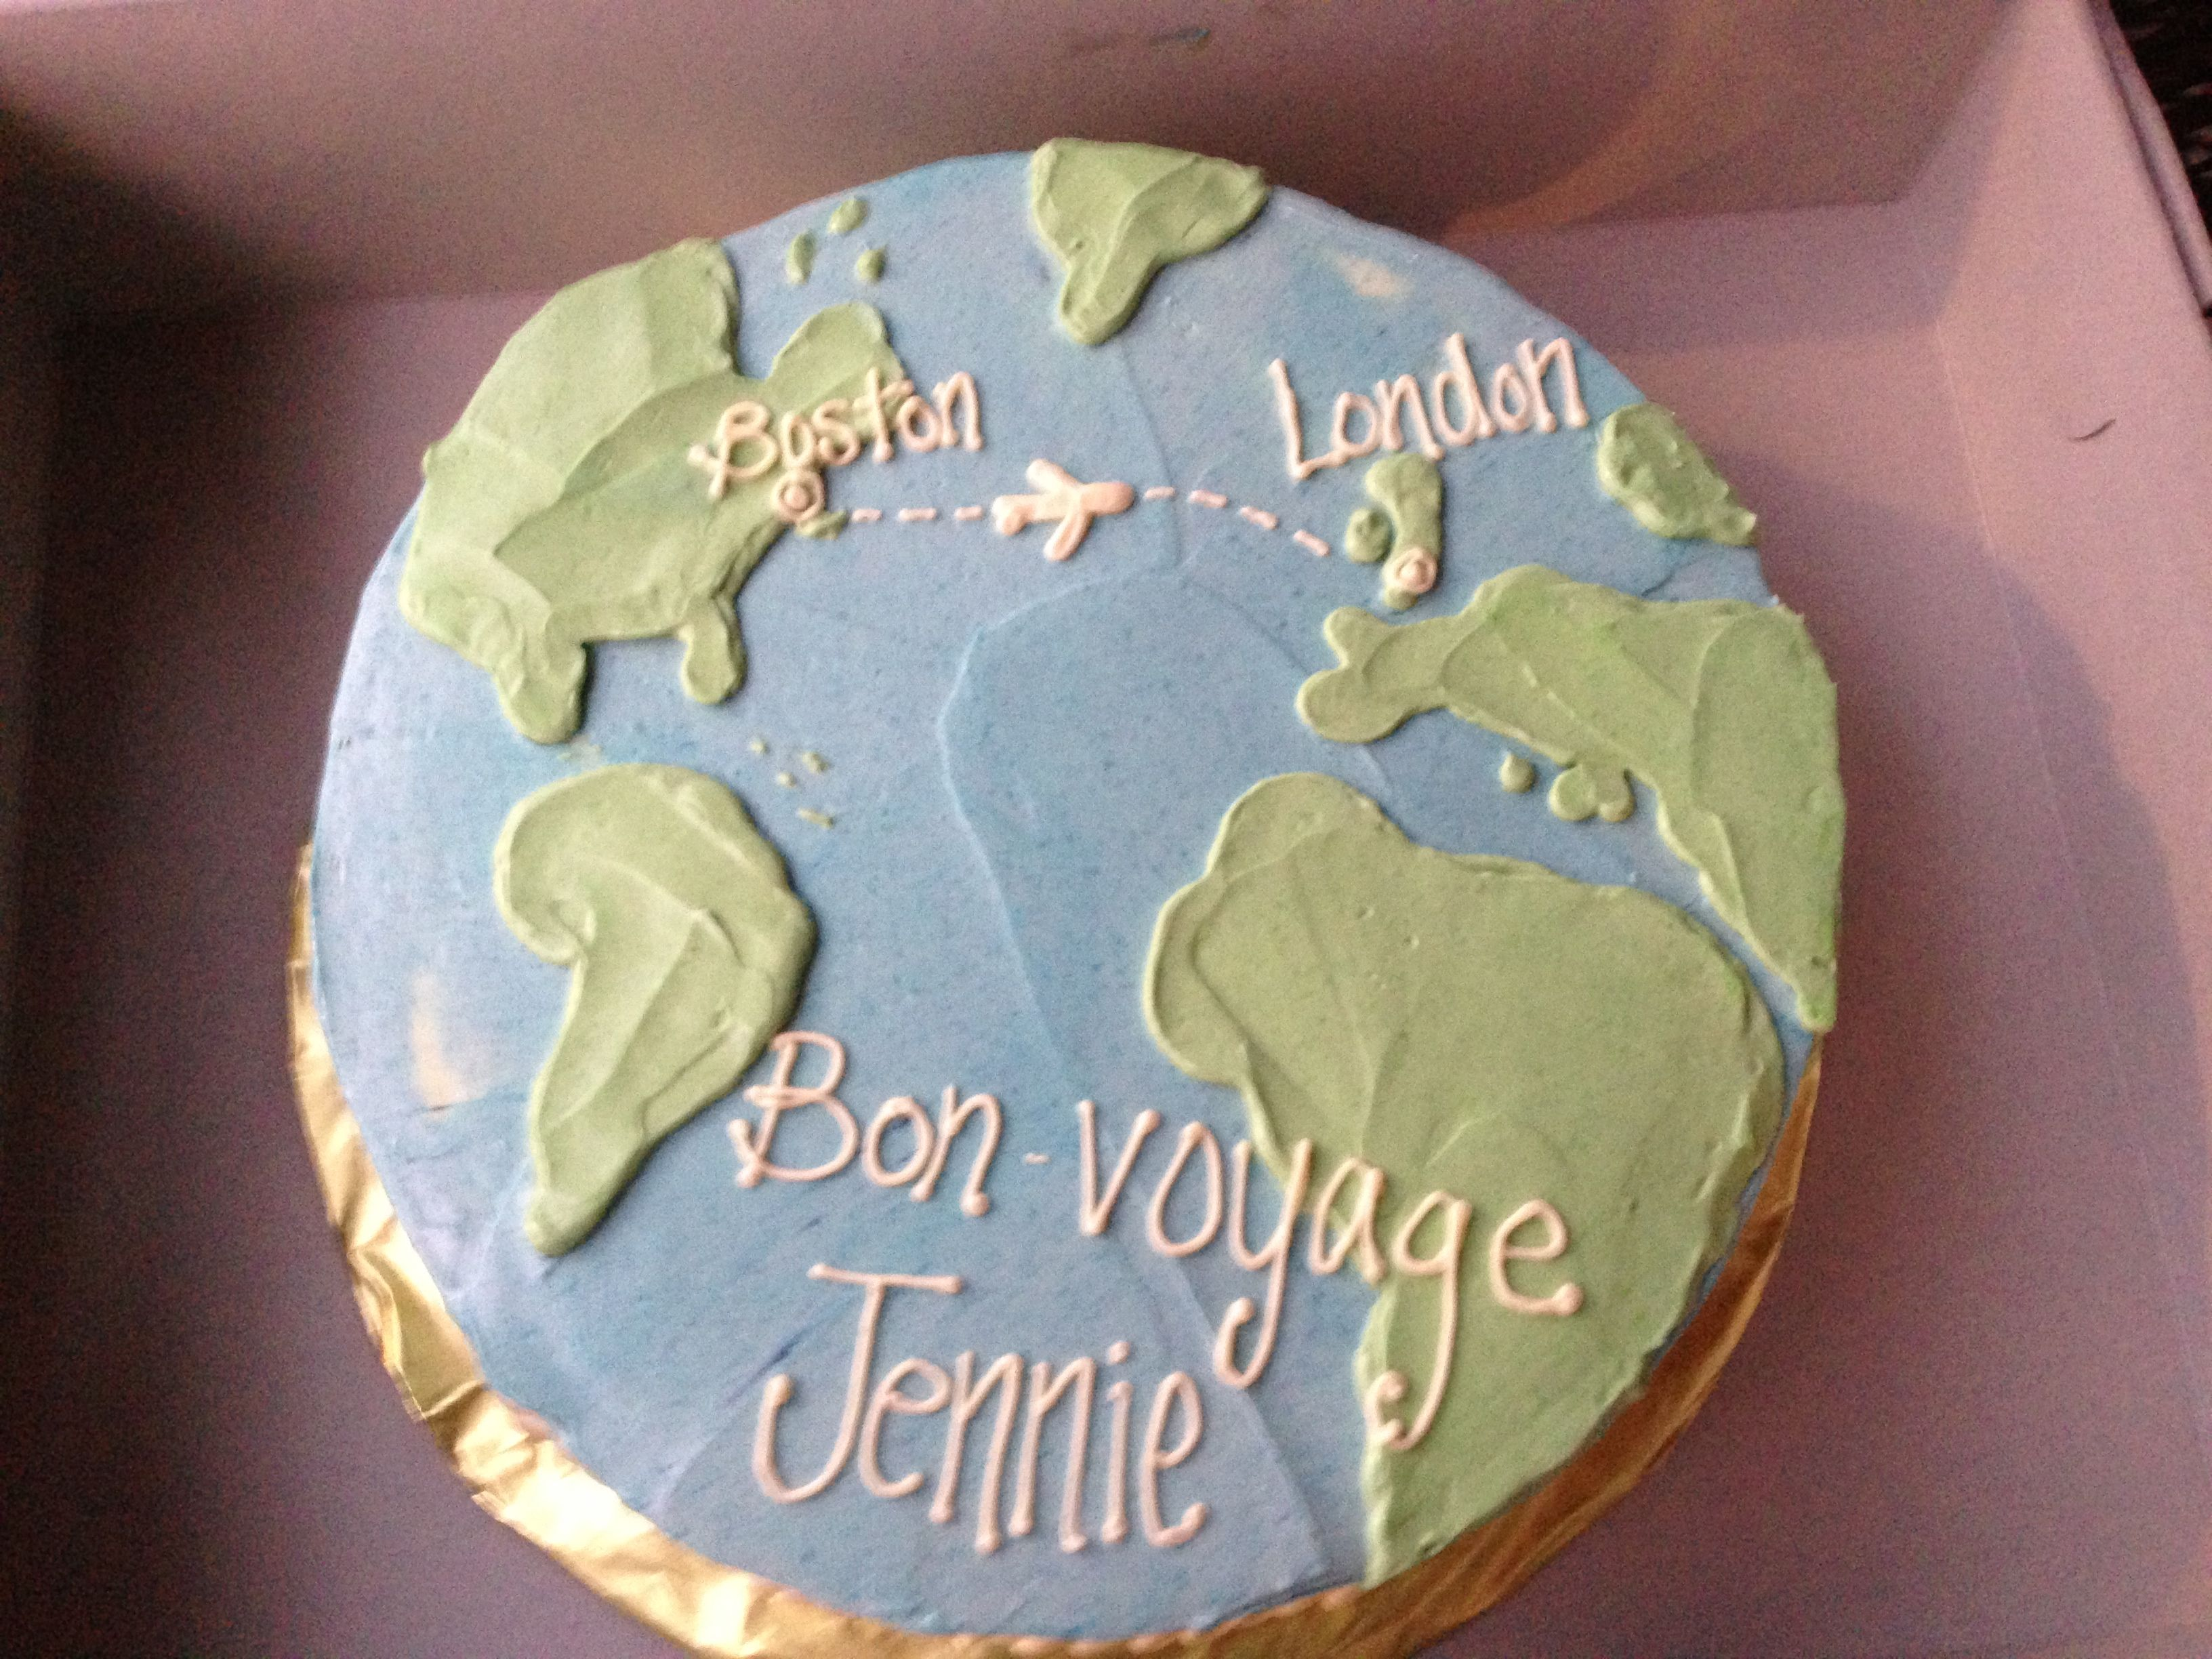 Cake Decorating Ideas Bon Voyage : Bon voyage cake! Party Ideas Pinterest Bon voyage ...